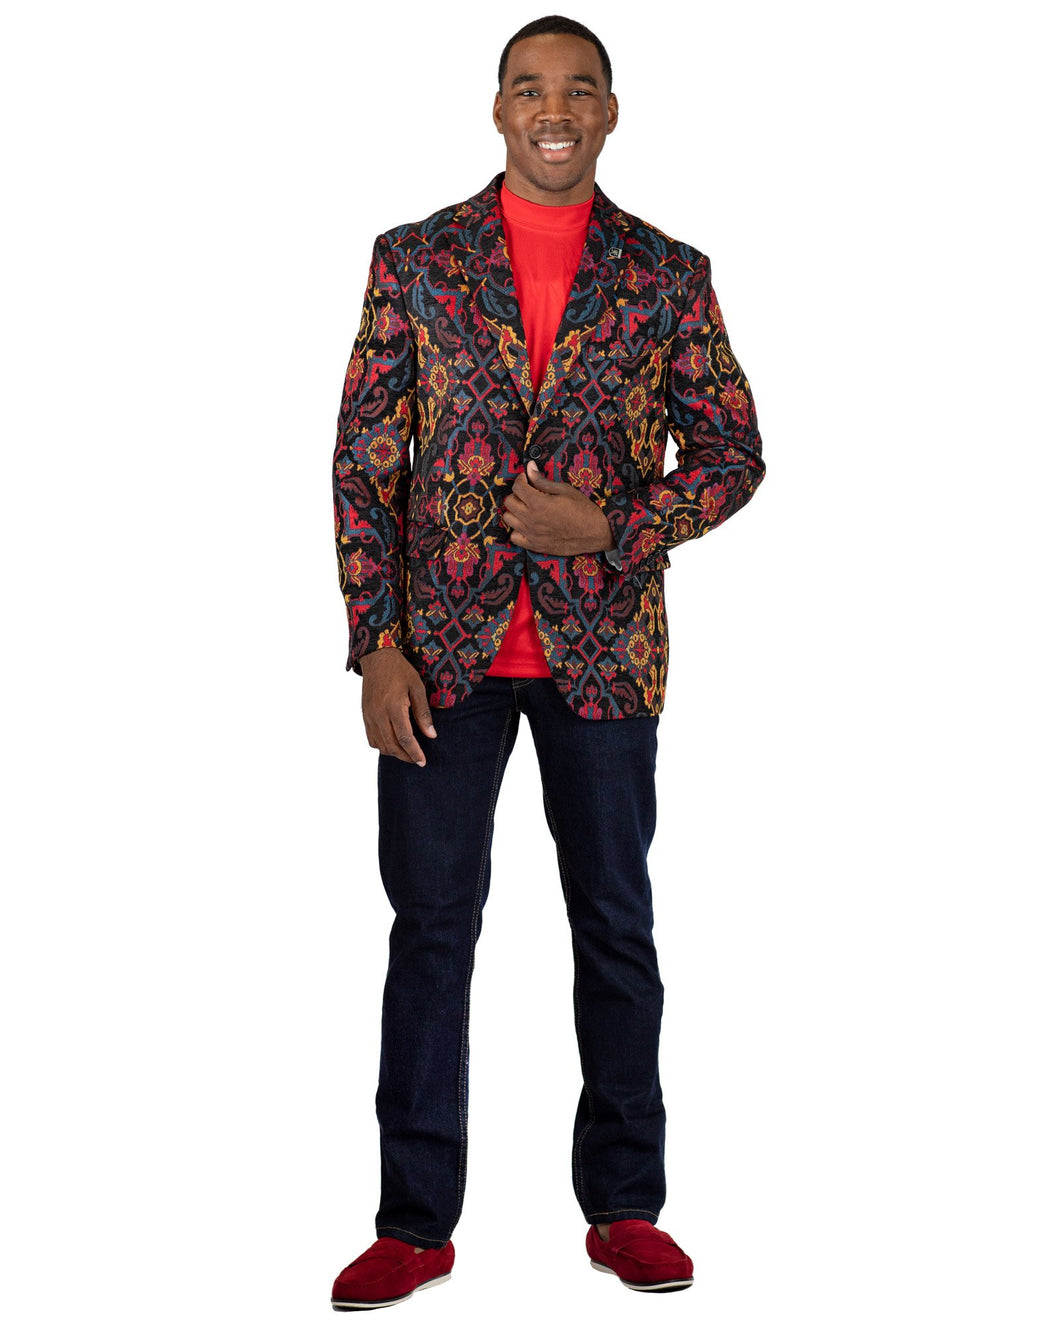 Stacy Adams Multi Color Print Sport Coat - 9120 County SC